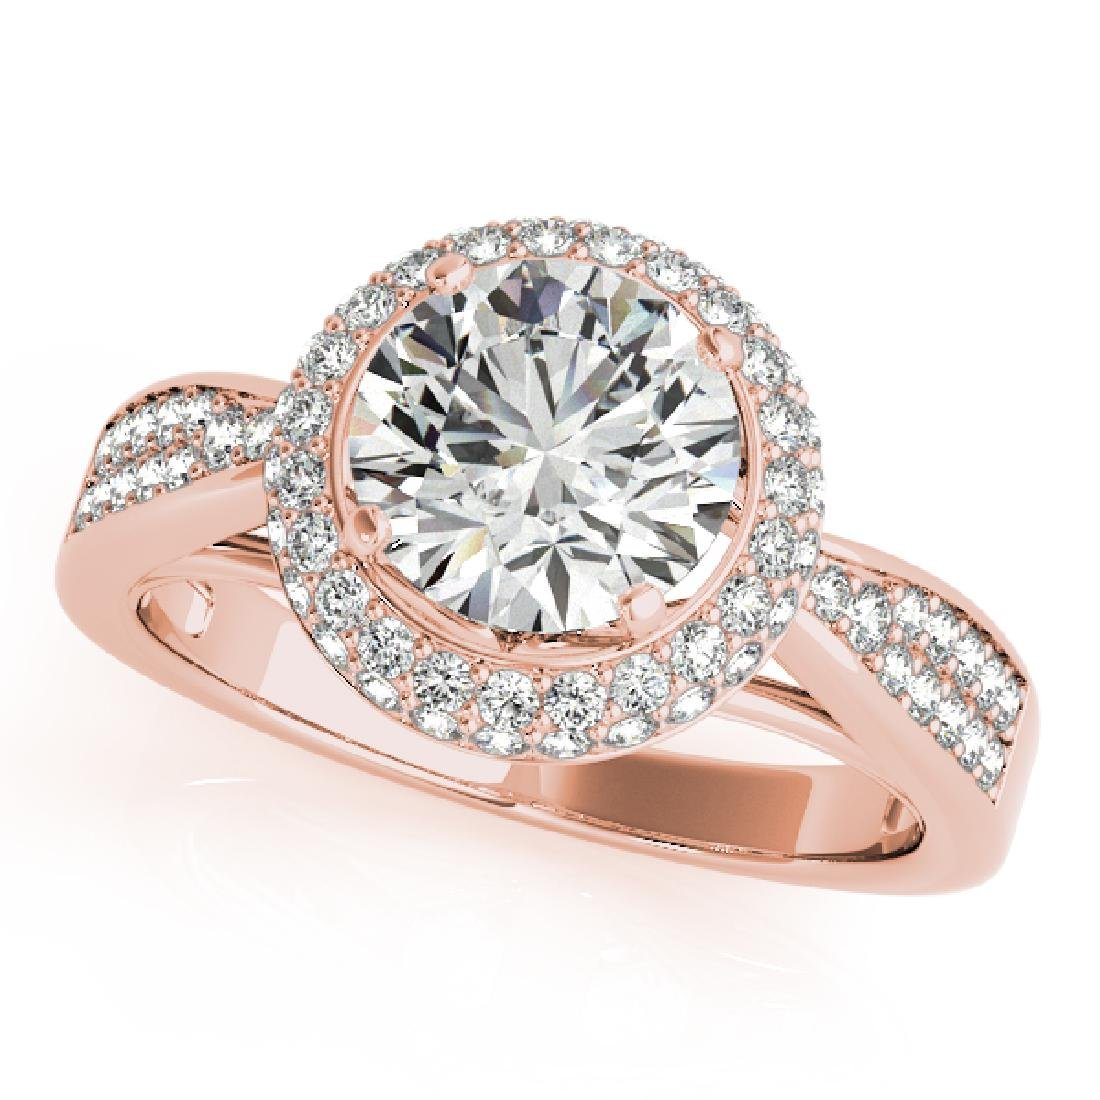 CERTIFIED 18K ROSE GOLD 0.86 CT G-H/VS-SI1 DIAMOND HALO